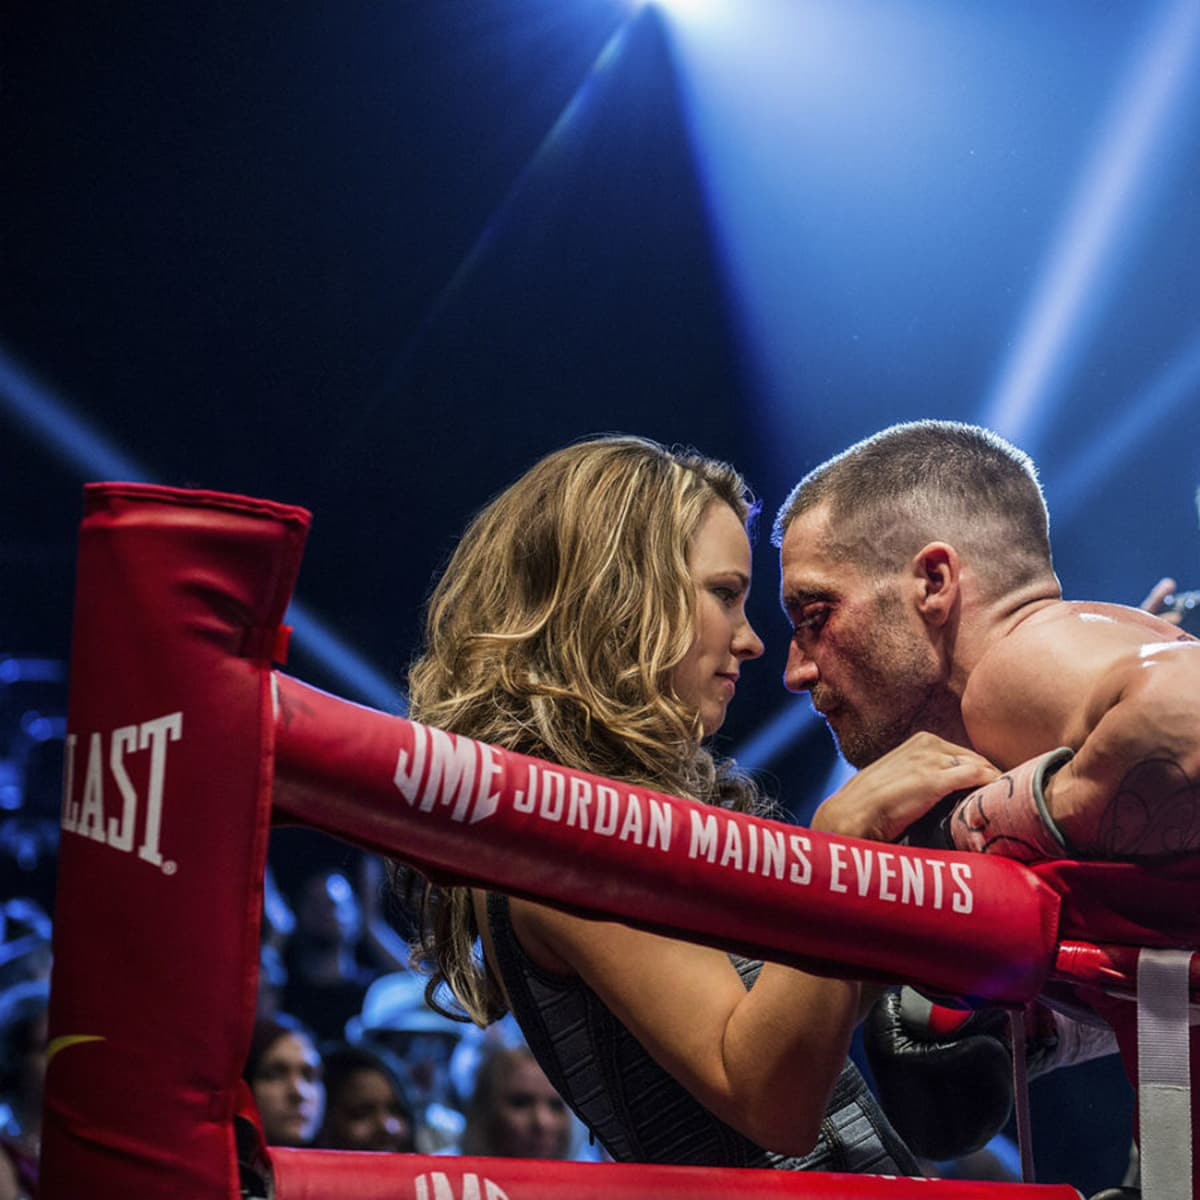 Rachel McAdams and Jake Gyllenhaal in Southpaw